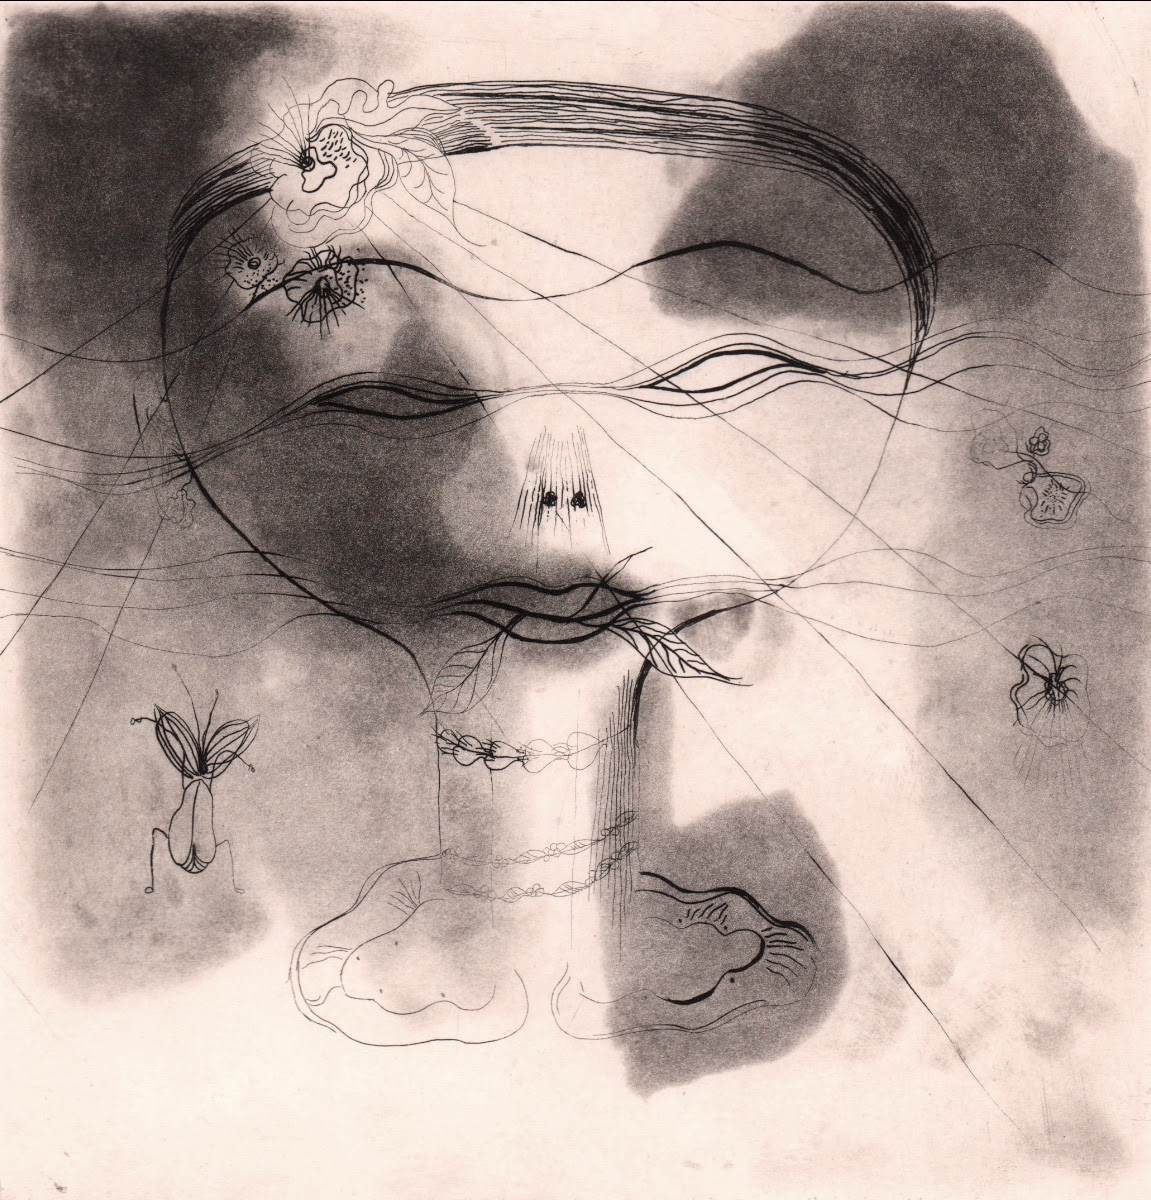 fine art print image of abstract face with insects by Catherine Yarrow